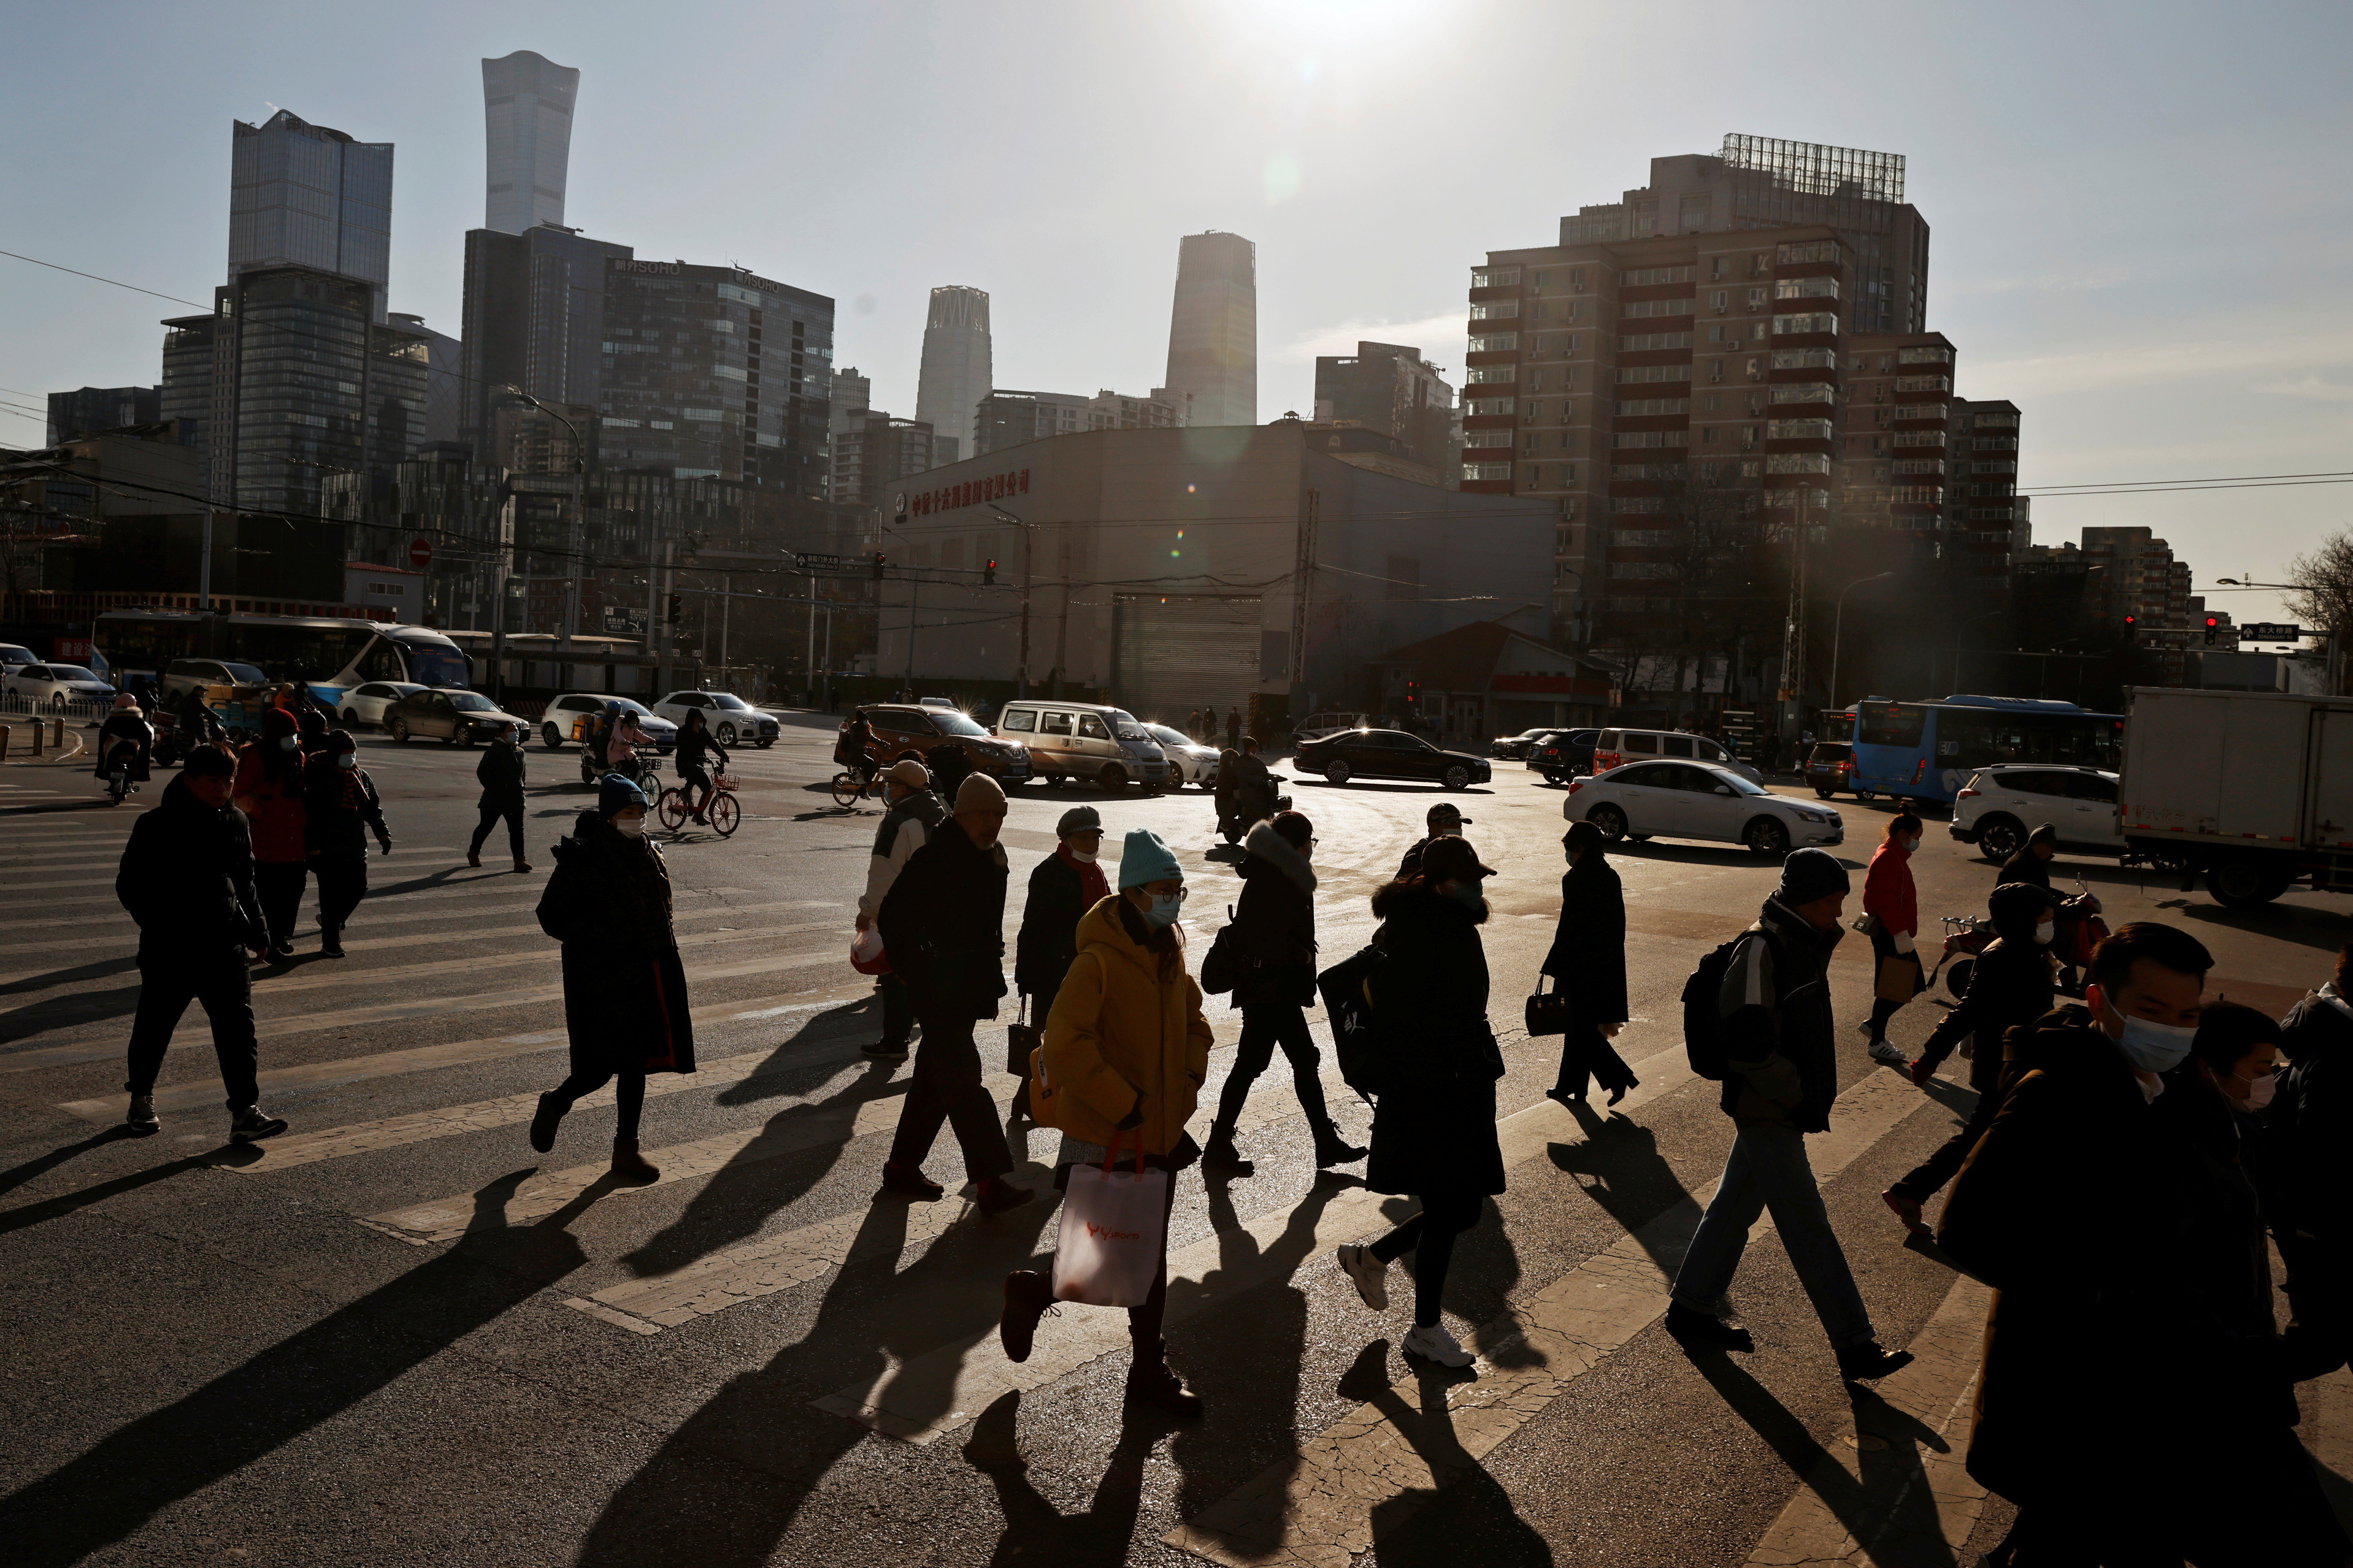 People cross a street during morning rush hour in front of the skyline of the central business district in Beijing, China.